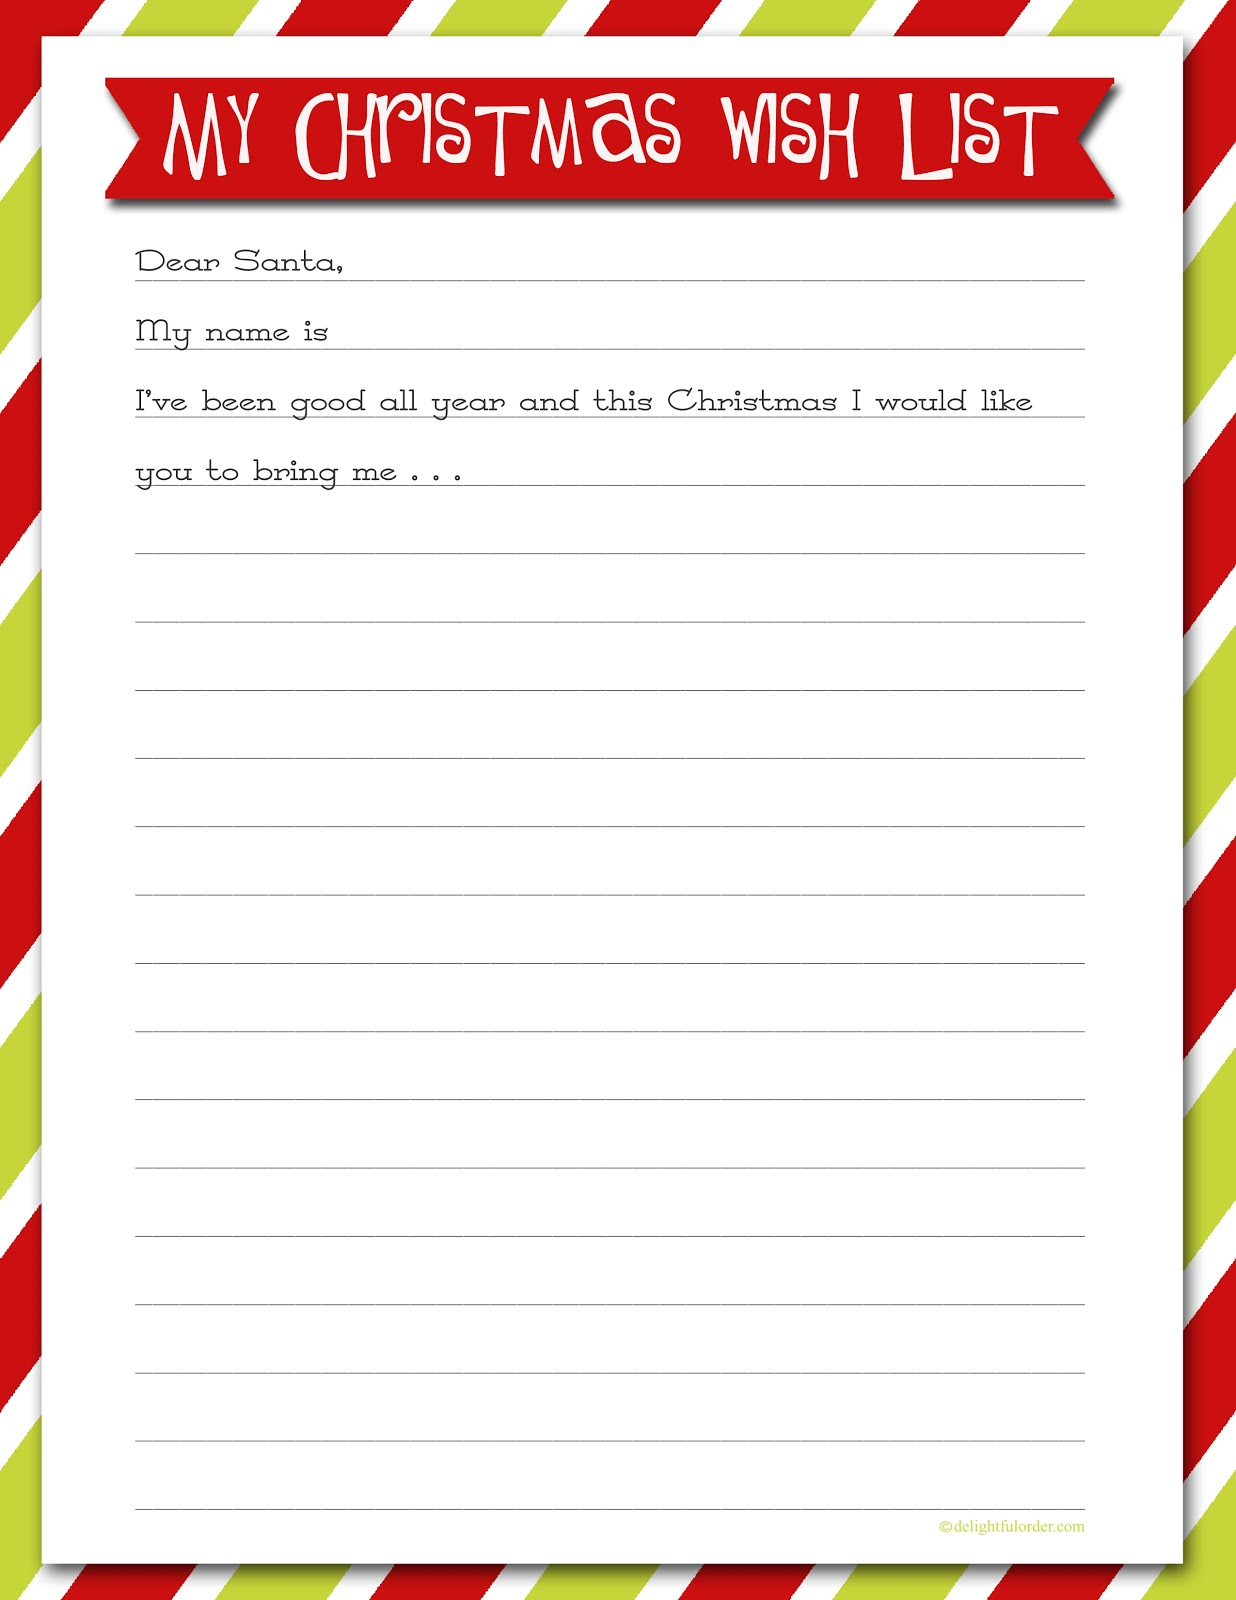 Wish List Maker With Pictures - Bestchristmasdeals - Free Printable Christmas List Maker